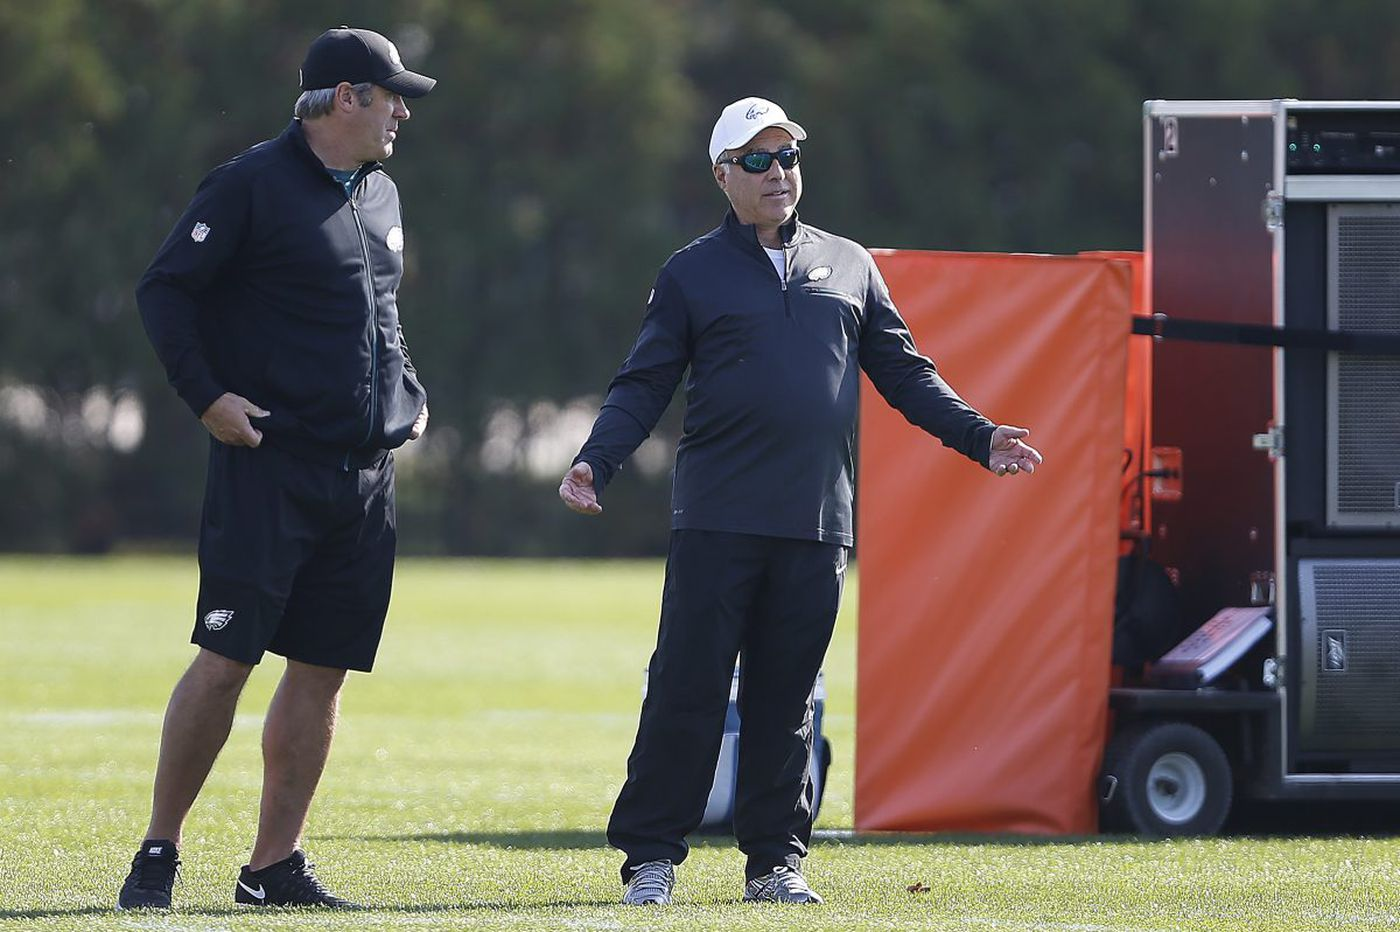 Blame Jeffrey Lurie and Howie Roseman for the Eagles' laughable mess, not Doug Pederson | Marcus Hayes